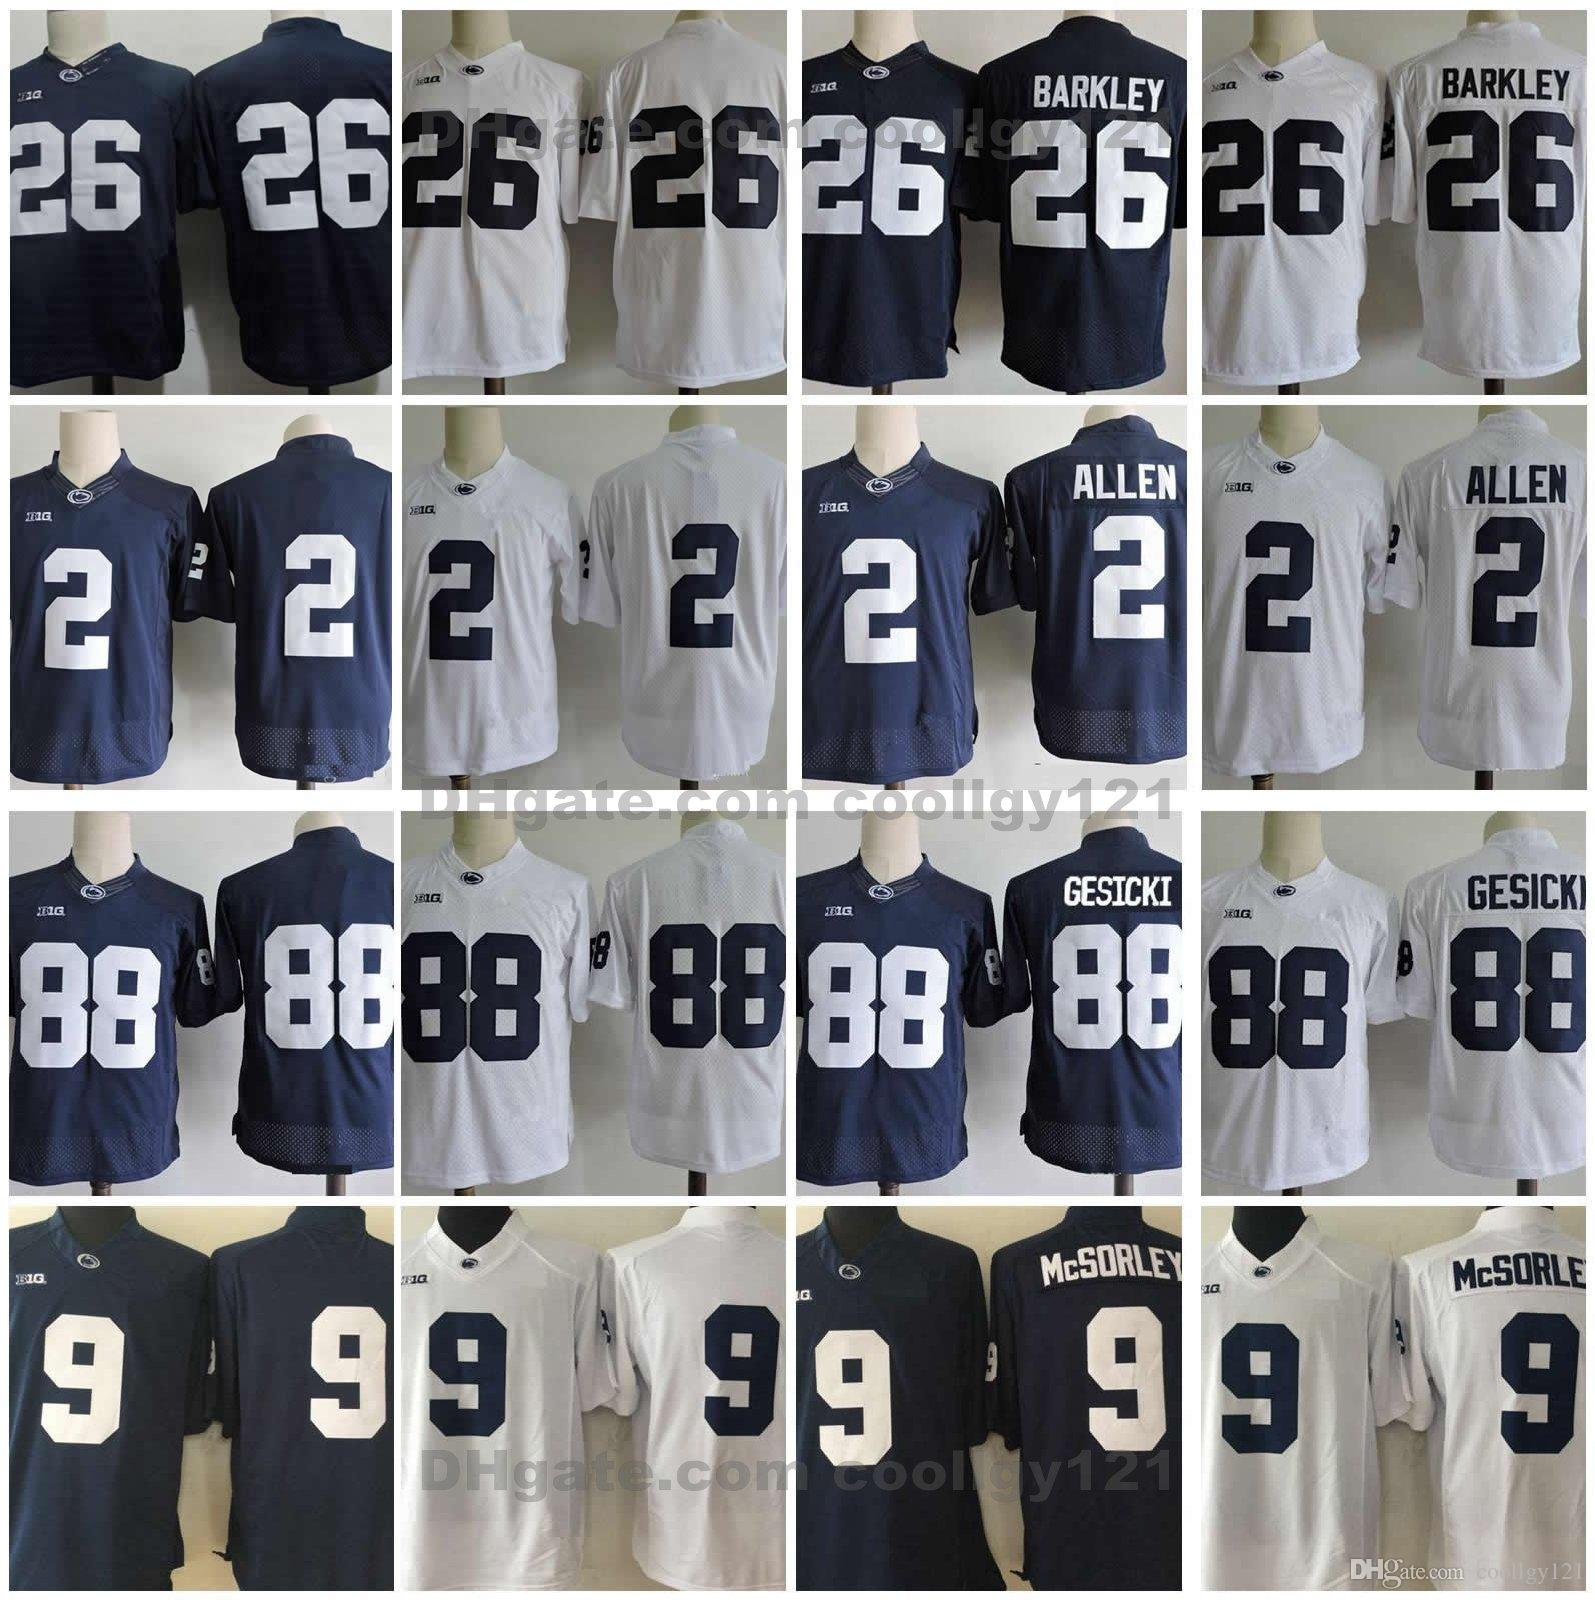 df7f38944 2018 Penn State Nittany Lions 26 Saquon Barkley Jersey 9 Trace McSorley 88  Mike Gesicki 2 Marcus Allen Stitched College Football Jerseys UK 2019 From  ...